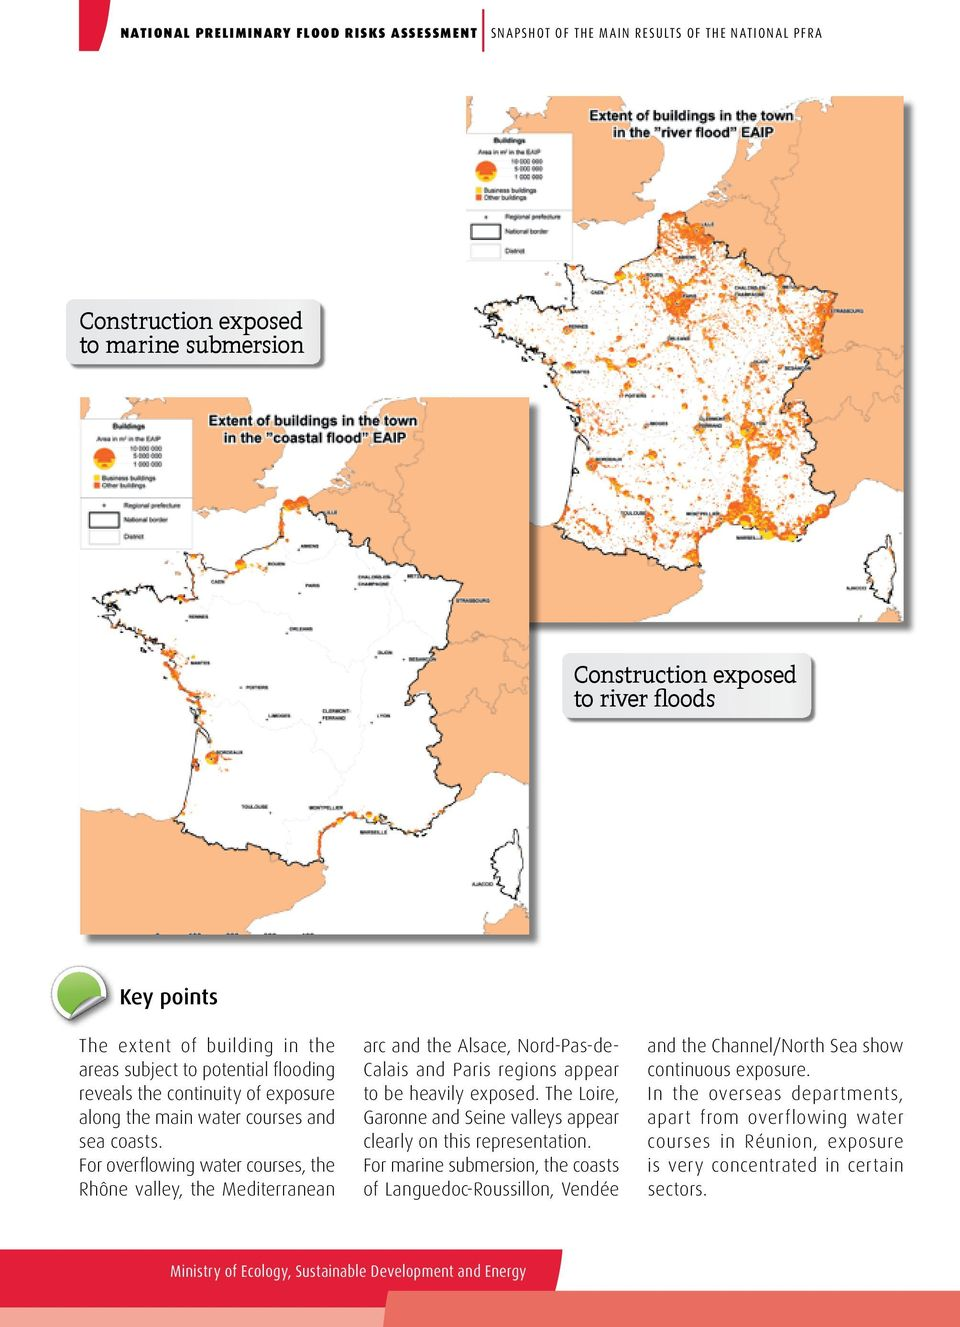 For overflowing water courses, the Rhône valley, the Mediterranean arc and the Alsace, Nord-Pas-de- Calais and Paris regions appear to be heavily exposed.